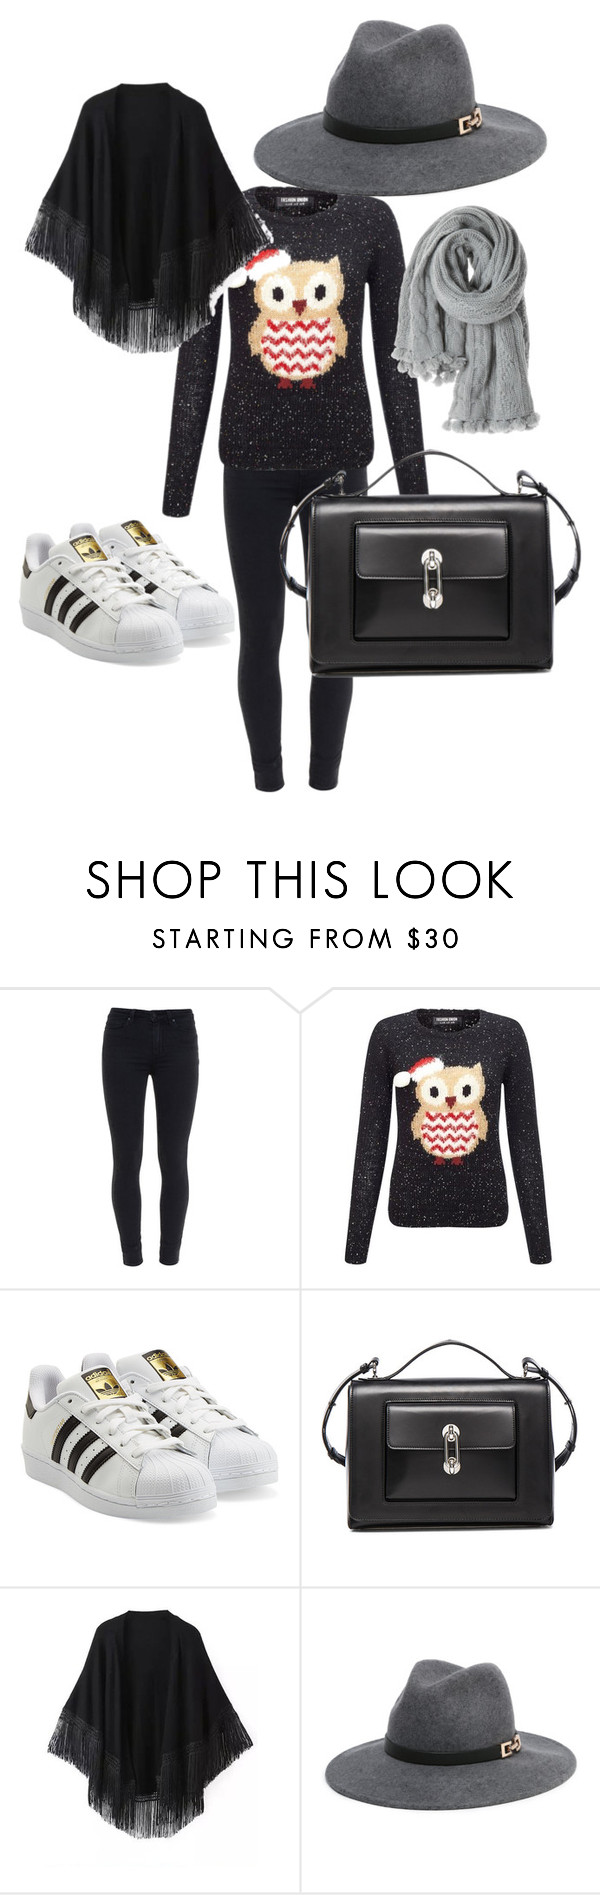 """Casual look"" by myrdosrey ❤ liked on Polyvore featuring interior, interiors, interior design, hogar, home decor, interior decorating, Paige Denim, Lipsy, adidas Originals y Balenciaga"